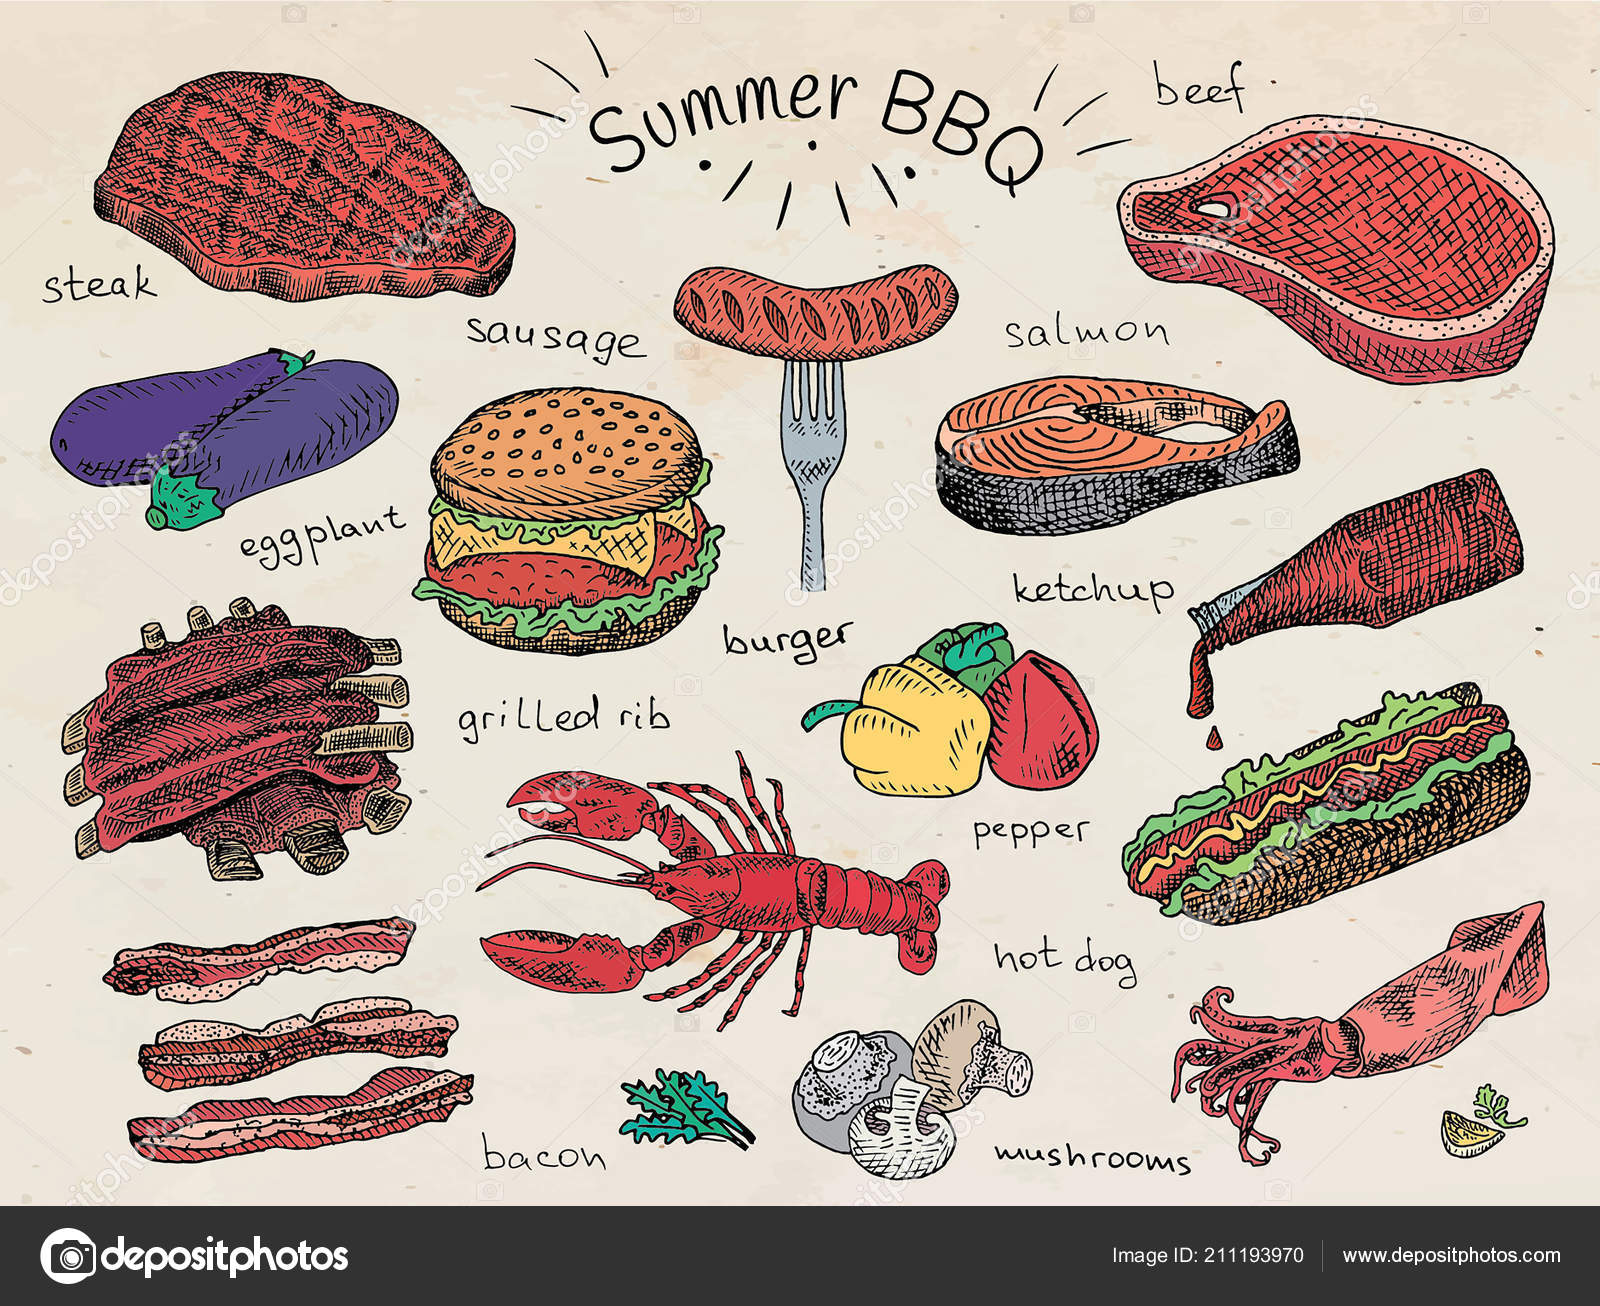 Beautiful Illustration Summer Bbq Food Ribs Sausage Beef Steak.